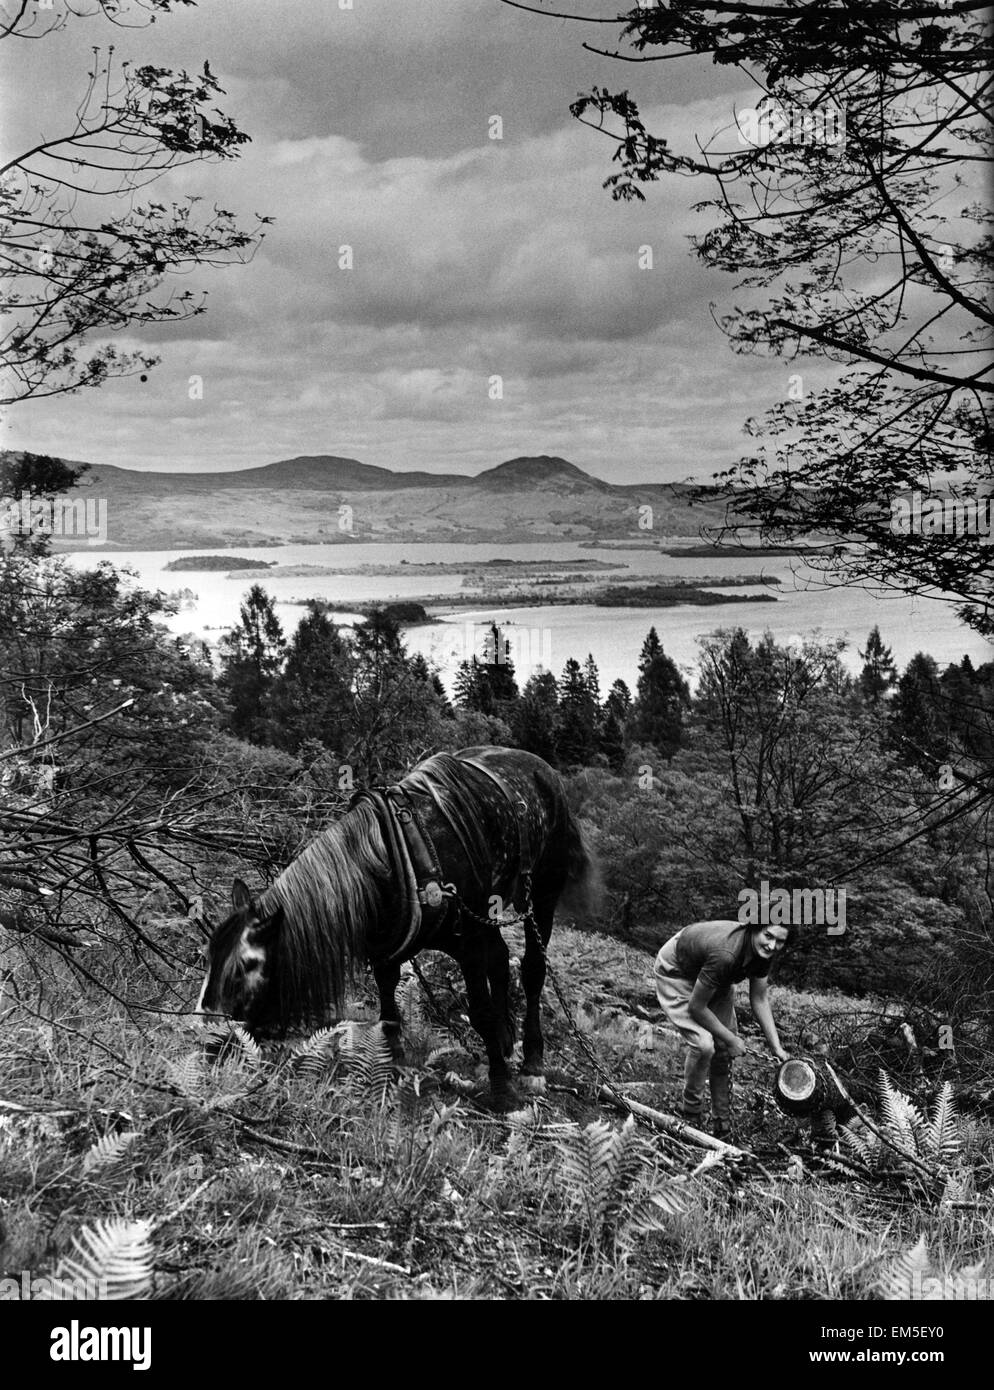 Woman and horse at Loch Lomond. Loch Lomond is a freshwater Scottish loch which crosses the Highland Boundary Fault. - Stock Image